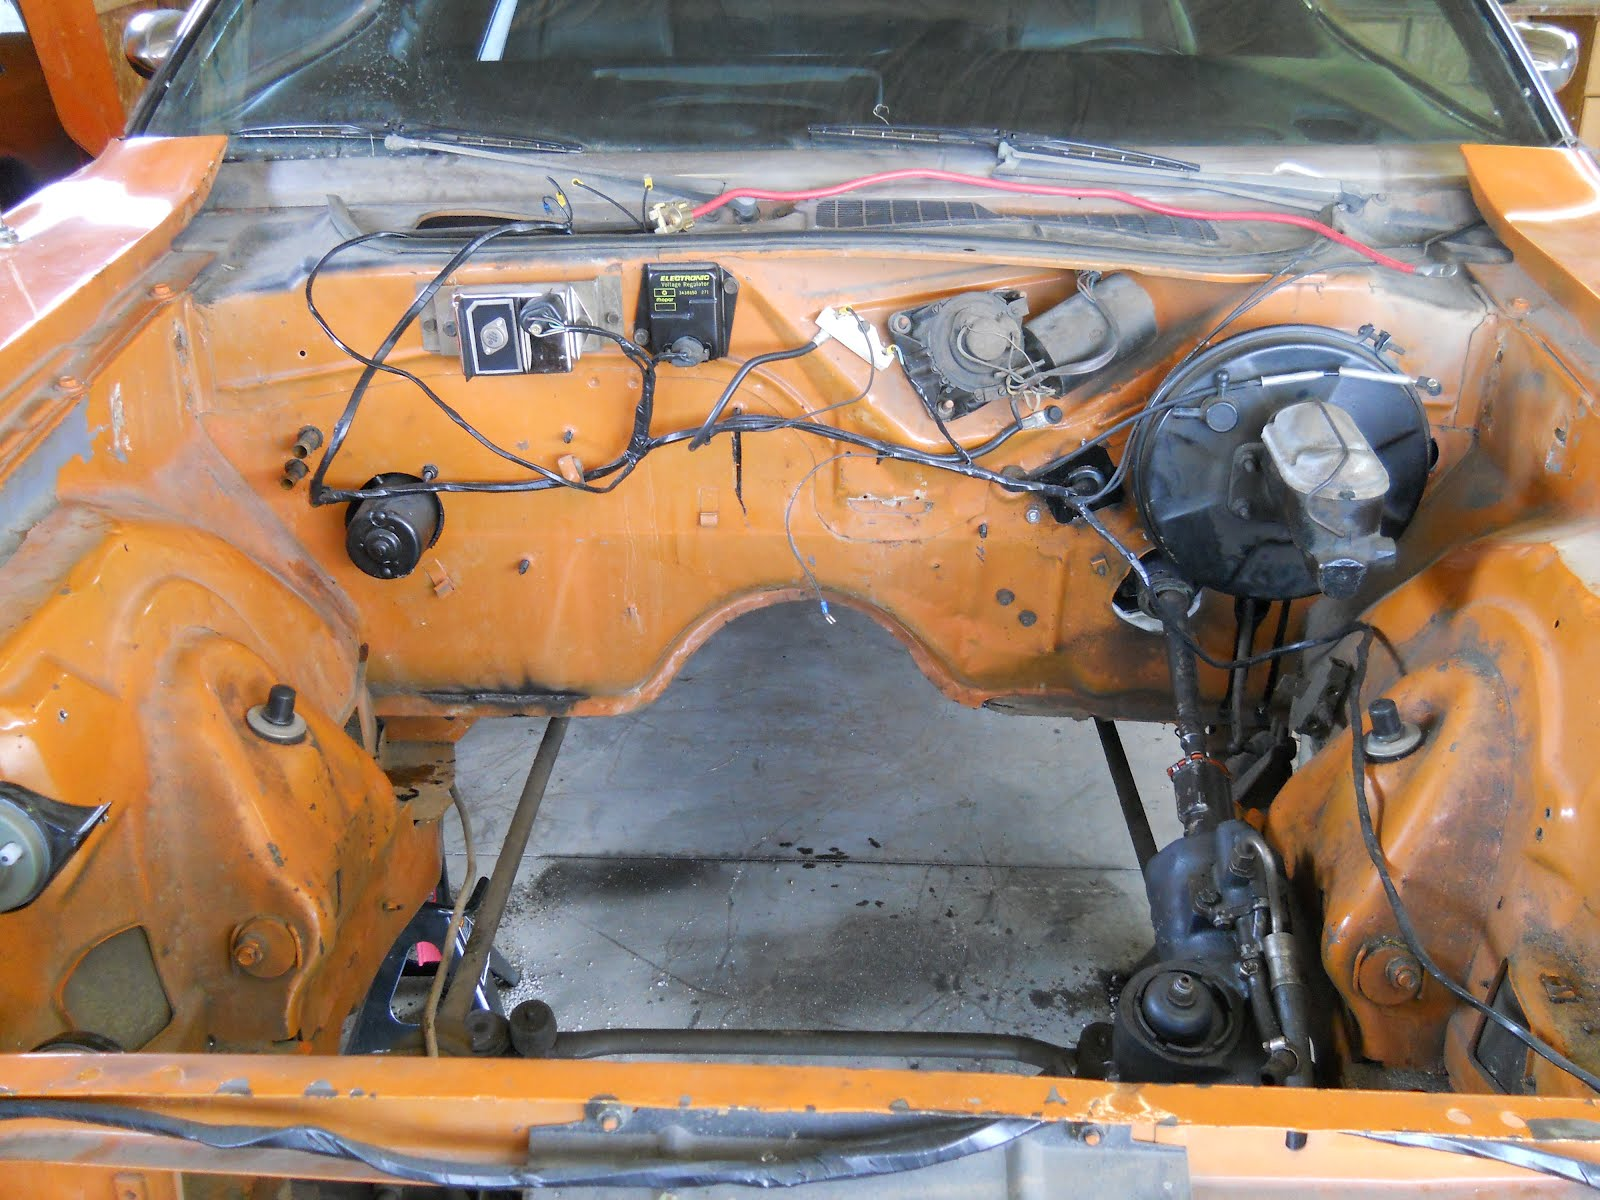 1972 dodge dart wiring diagram opel astra g 1998 motor city muscle: work on dad's 1970 challenger r/t